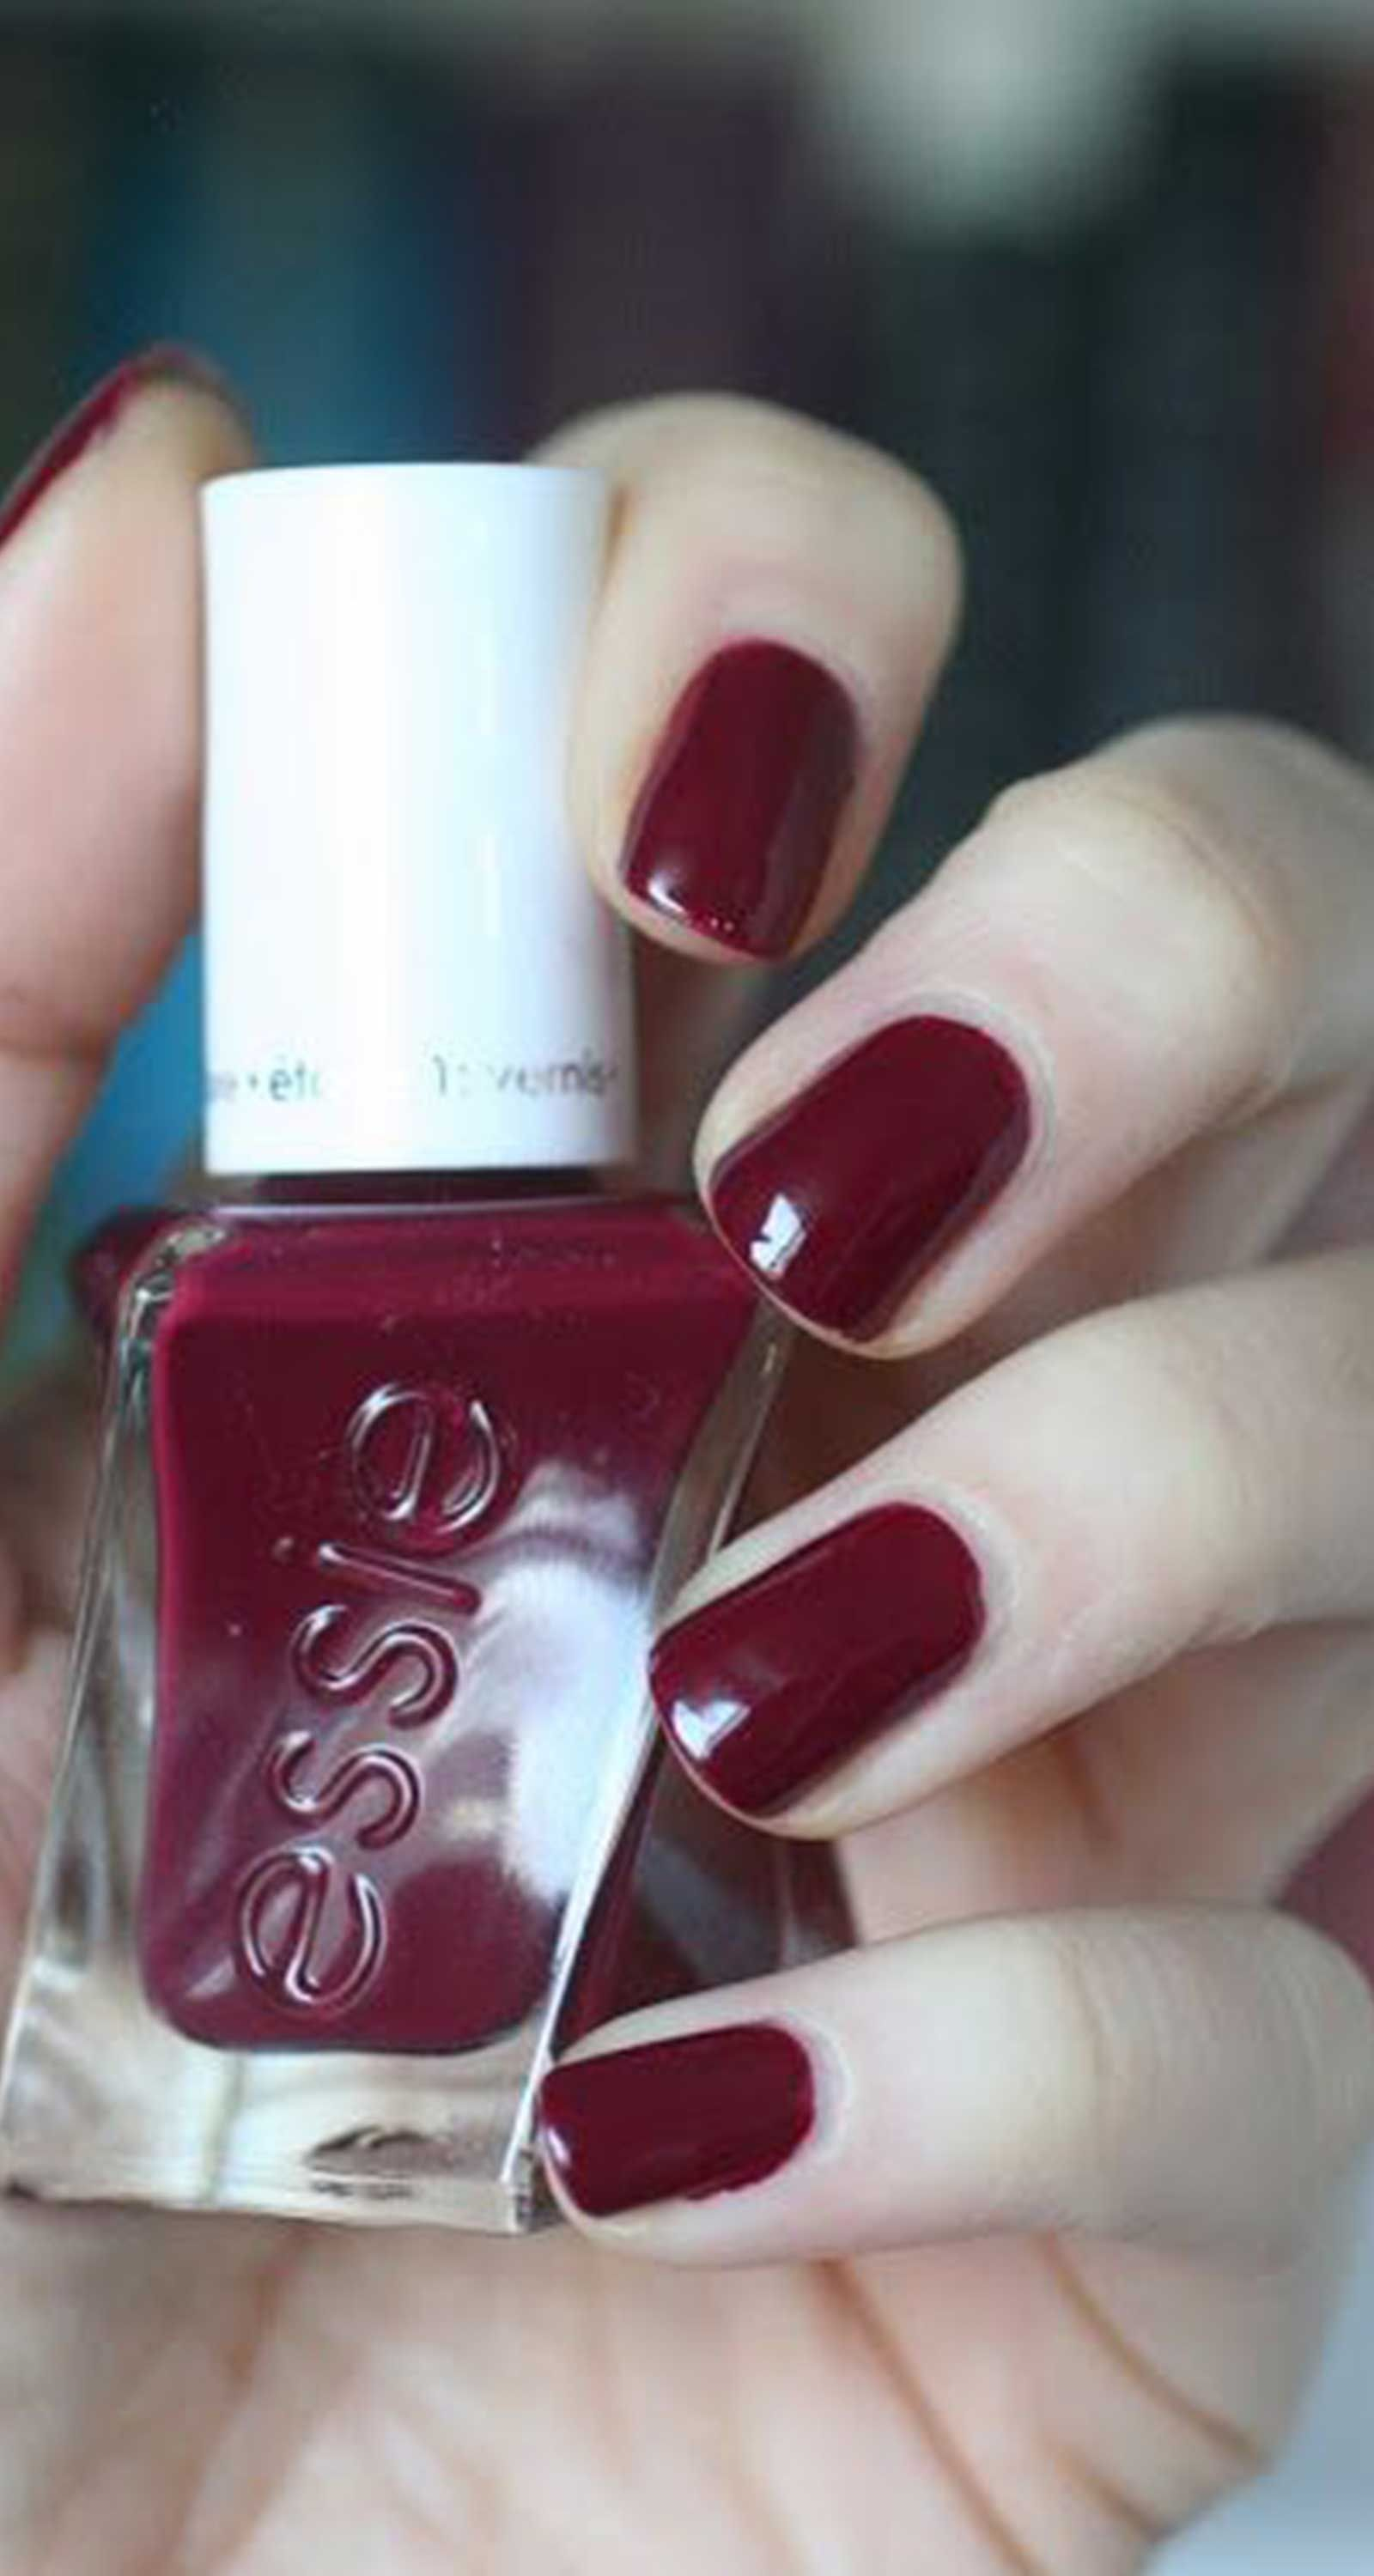 Amazing Essie Nail Colors You\'ll Love This Fall Season | Essie nail ...